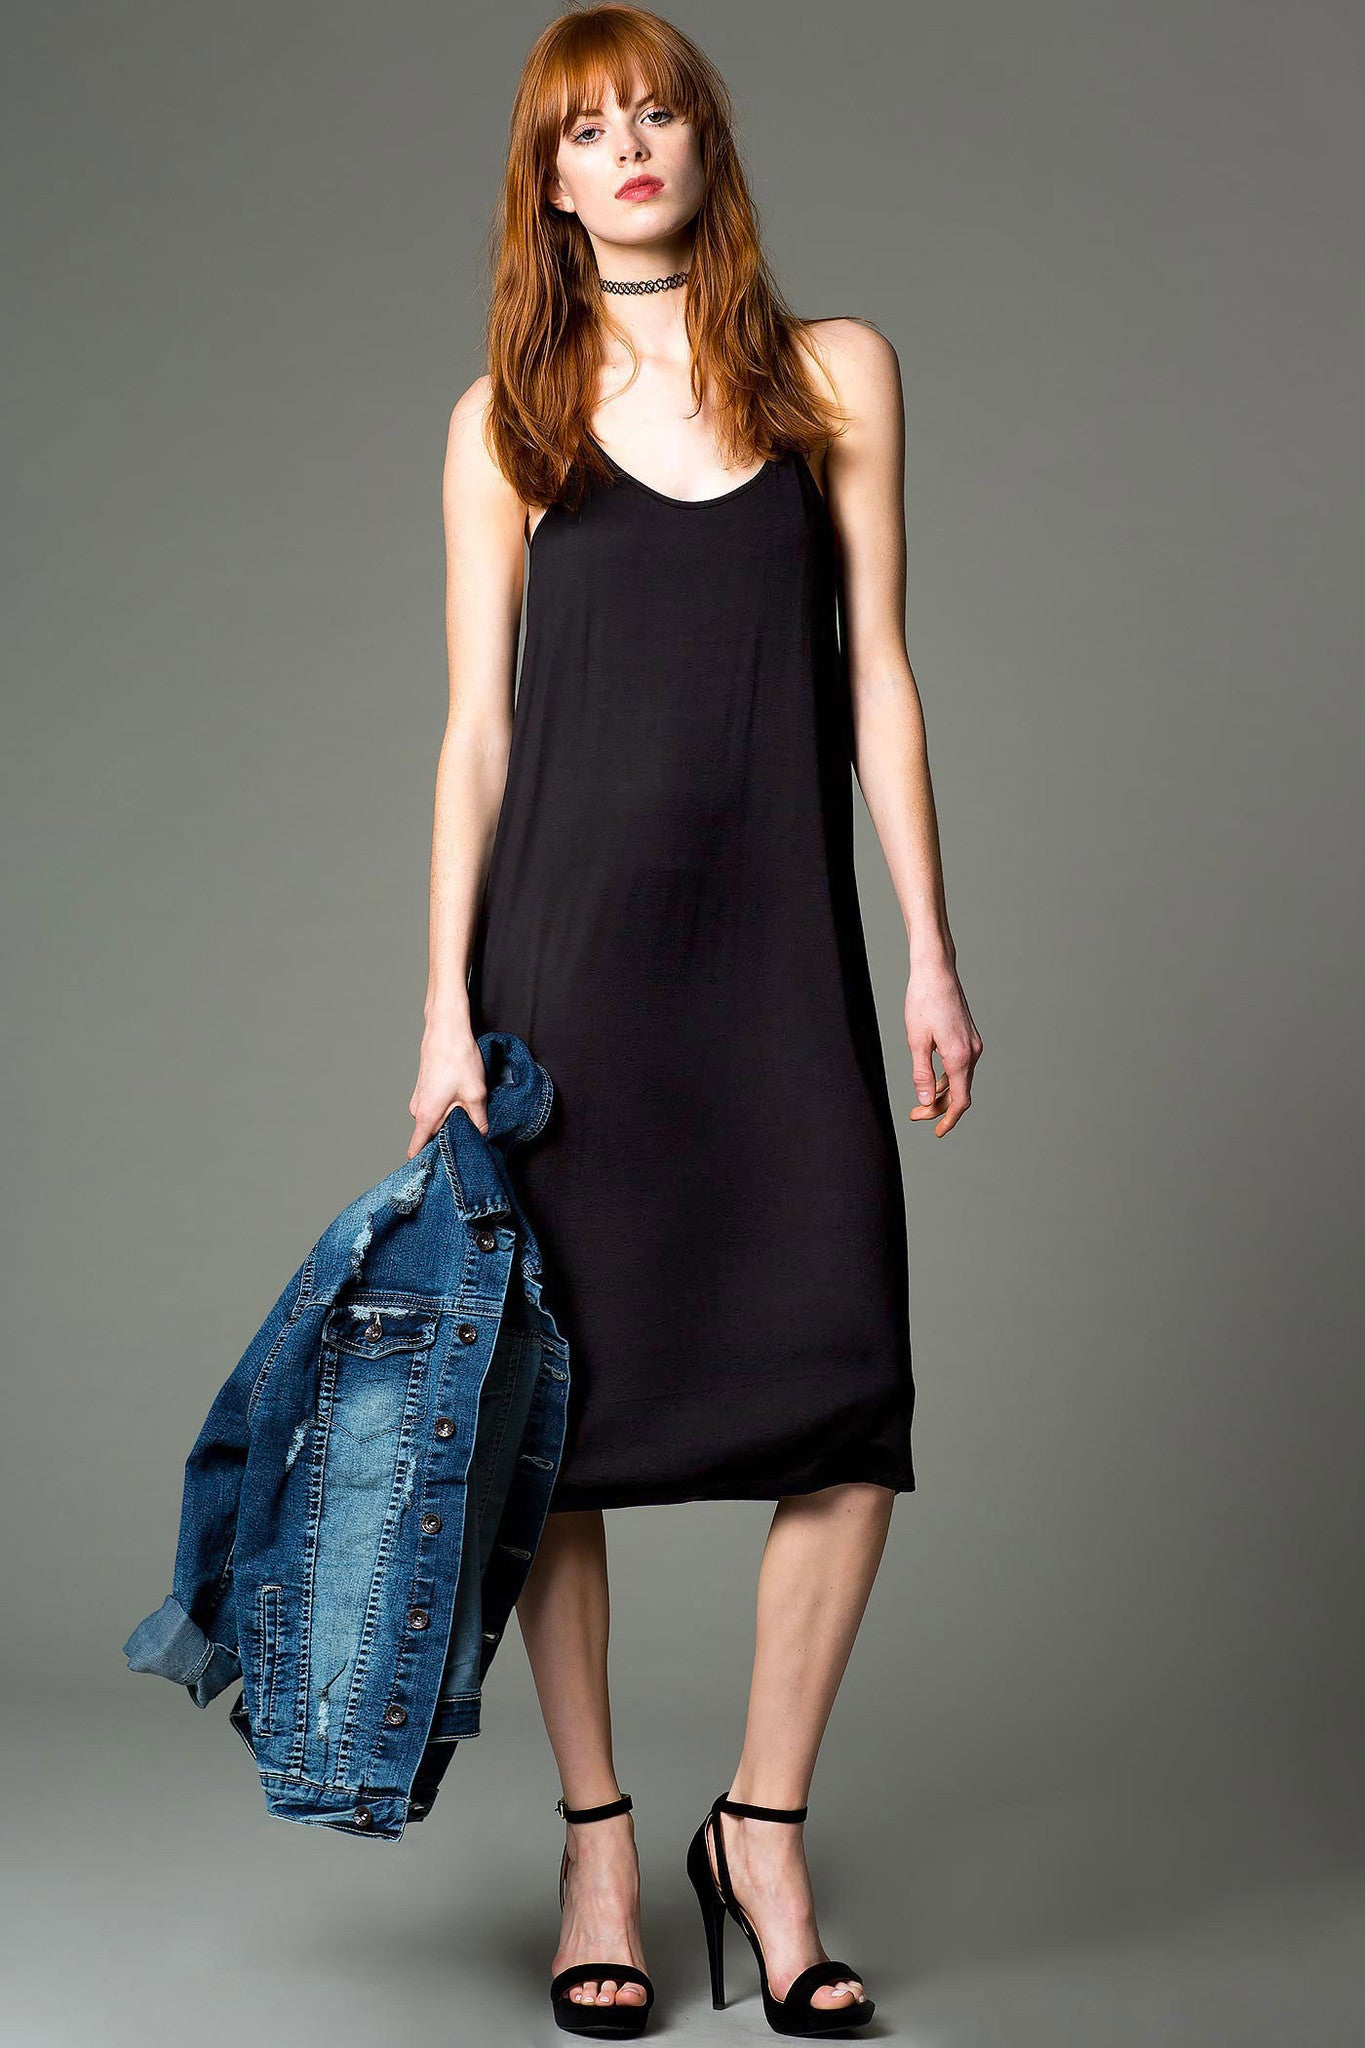 Womens casual street style oufit idea: Athleisure Sleeveless cami slip dress in black. Front view